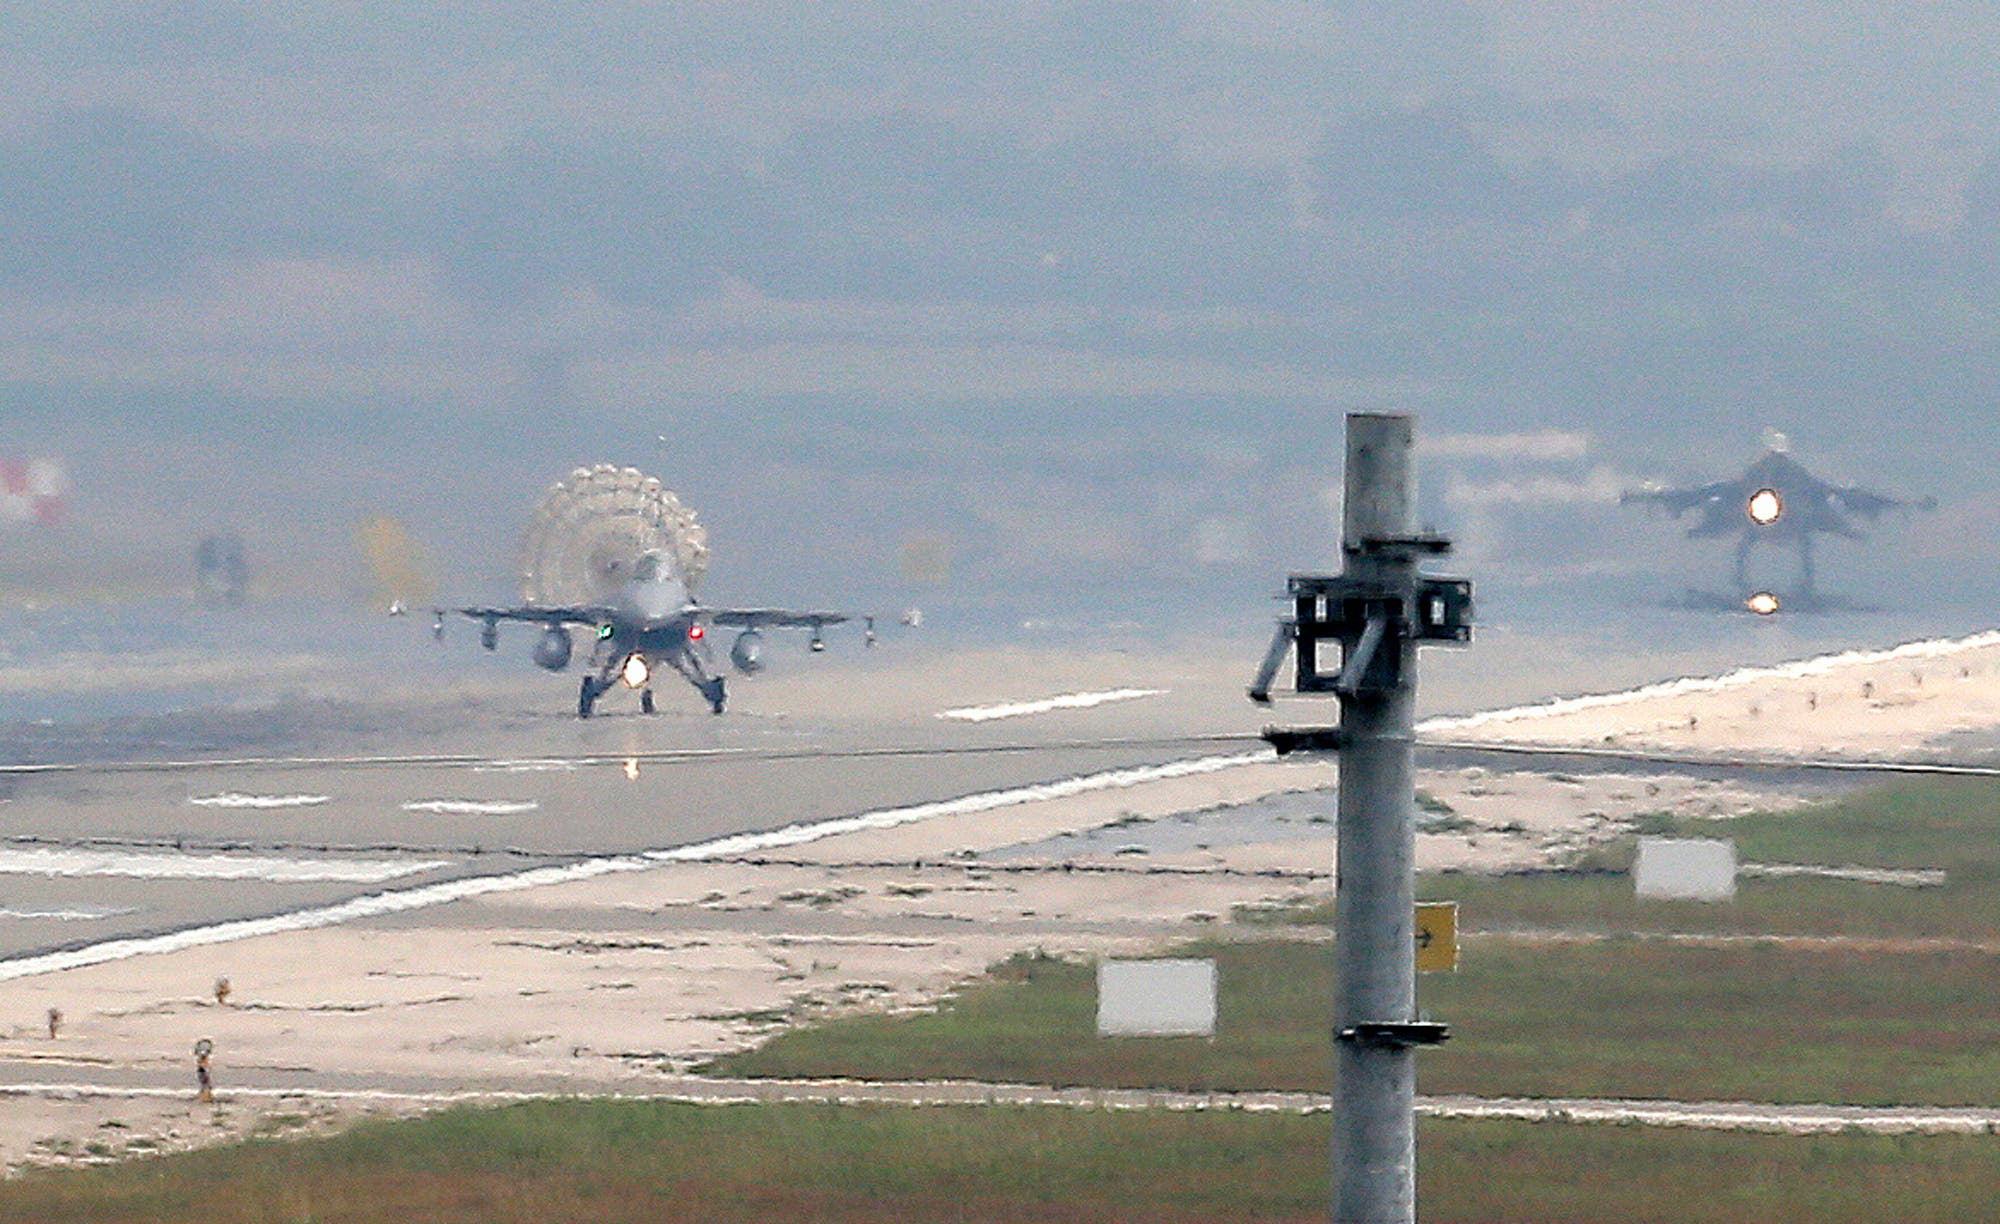 Turkish Air Force fighter planes land at Incirlik Air Base, on the outskirts of the city of Adana, southern Turkey, Thursday, July 30, 2015. After months of reluctance, Turkish warplanes last week started striking militant targets in Syria and agreed to allow the U.S. to launch its own strikes from Turkey's strategically located Incirlik Air Base. In a series of cross-border strikes, Turkey has not only targeted the IS group but also Kurdish fighters affiliated with forces battling IS in Syria and northern Iraq and Kurdistan Workers' Party, or PKK positions within Turkey. (AP Photo/Emrah Gurel)